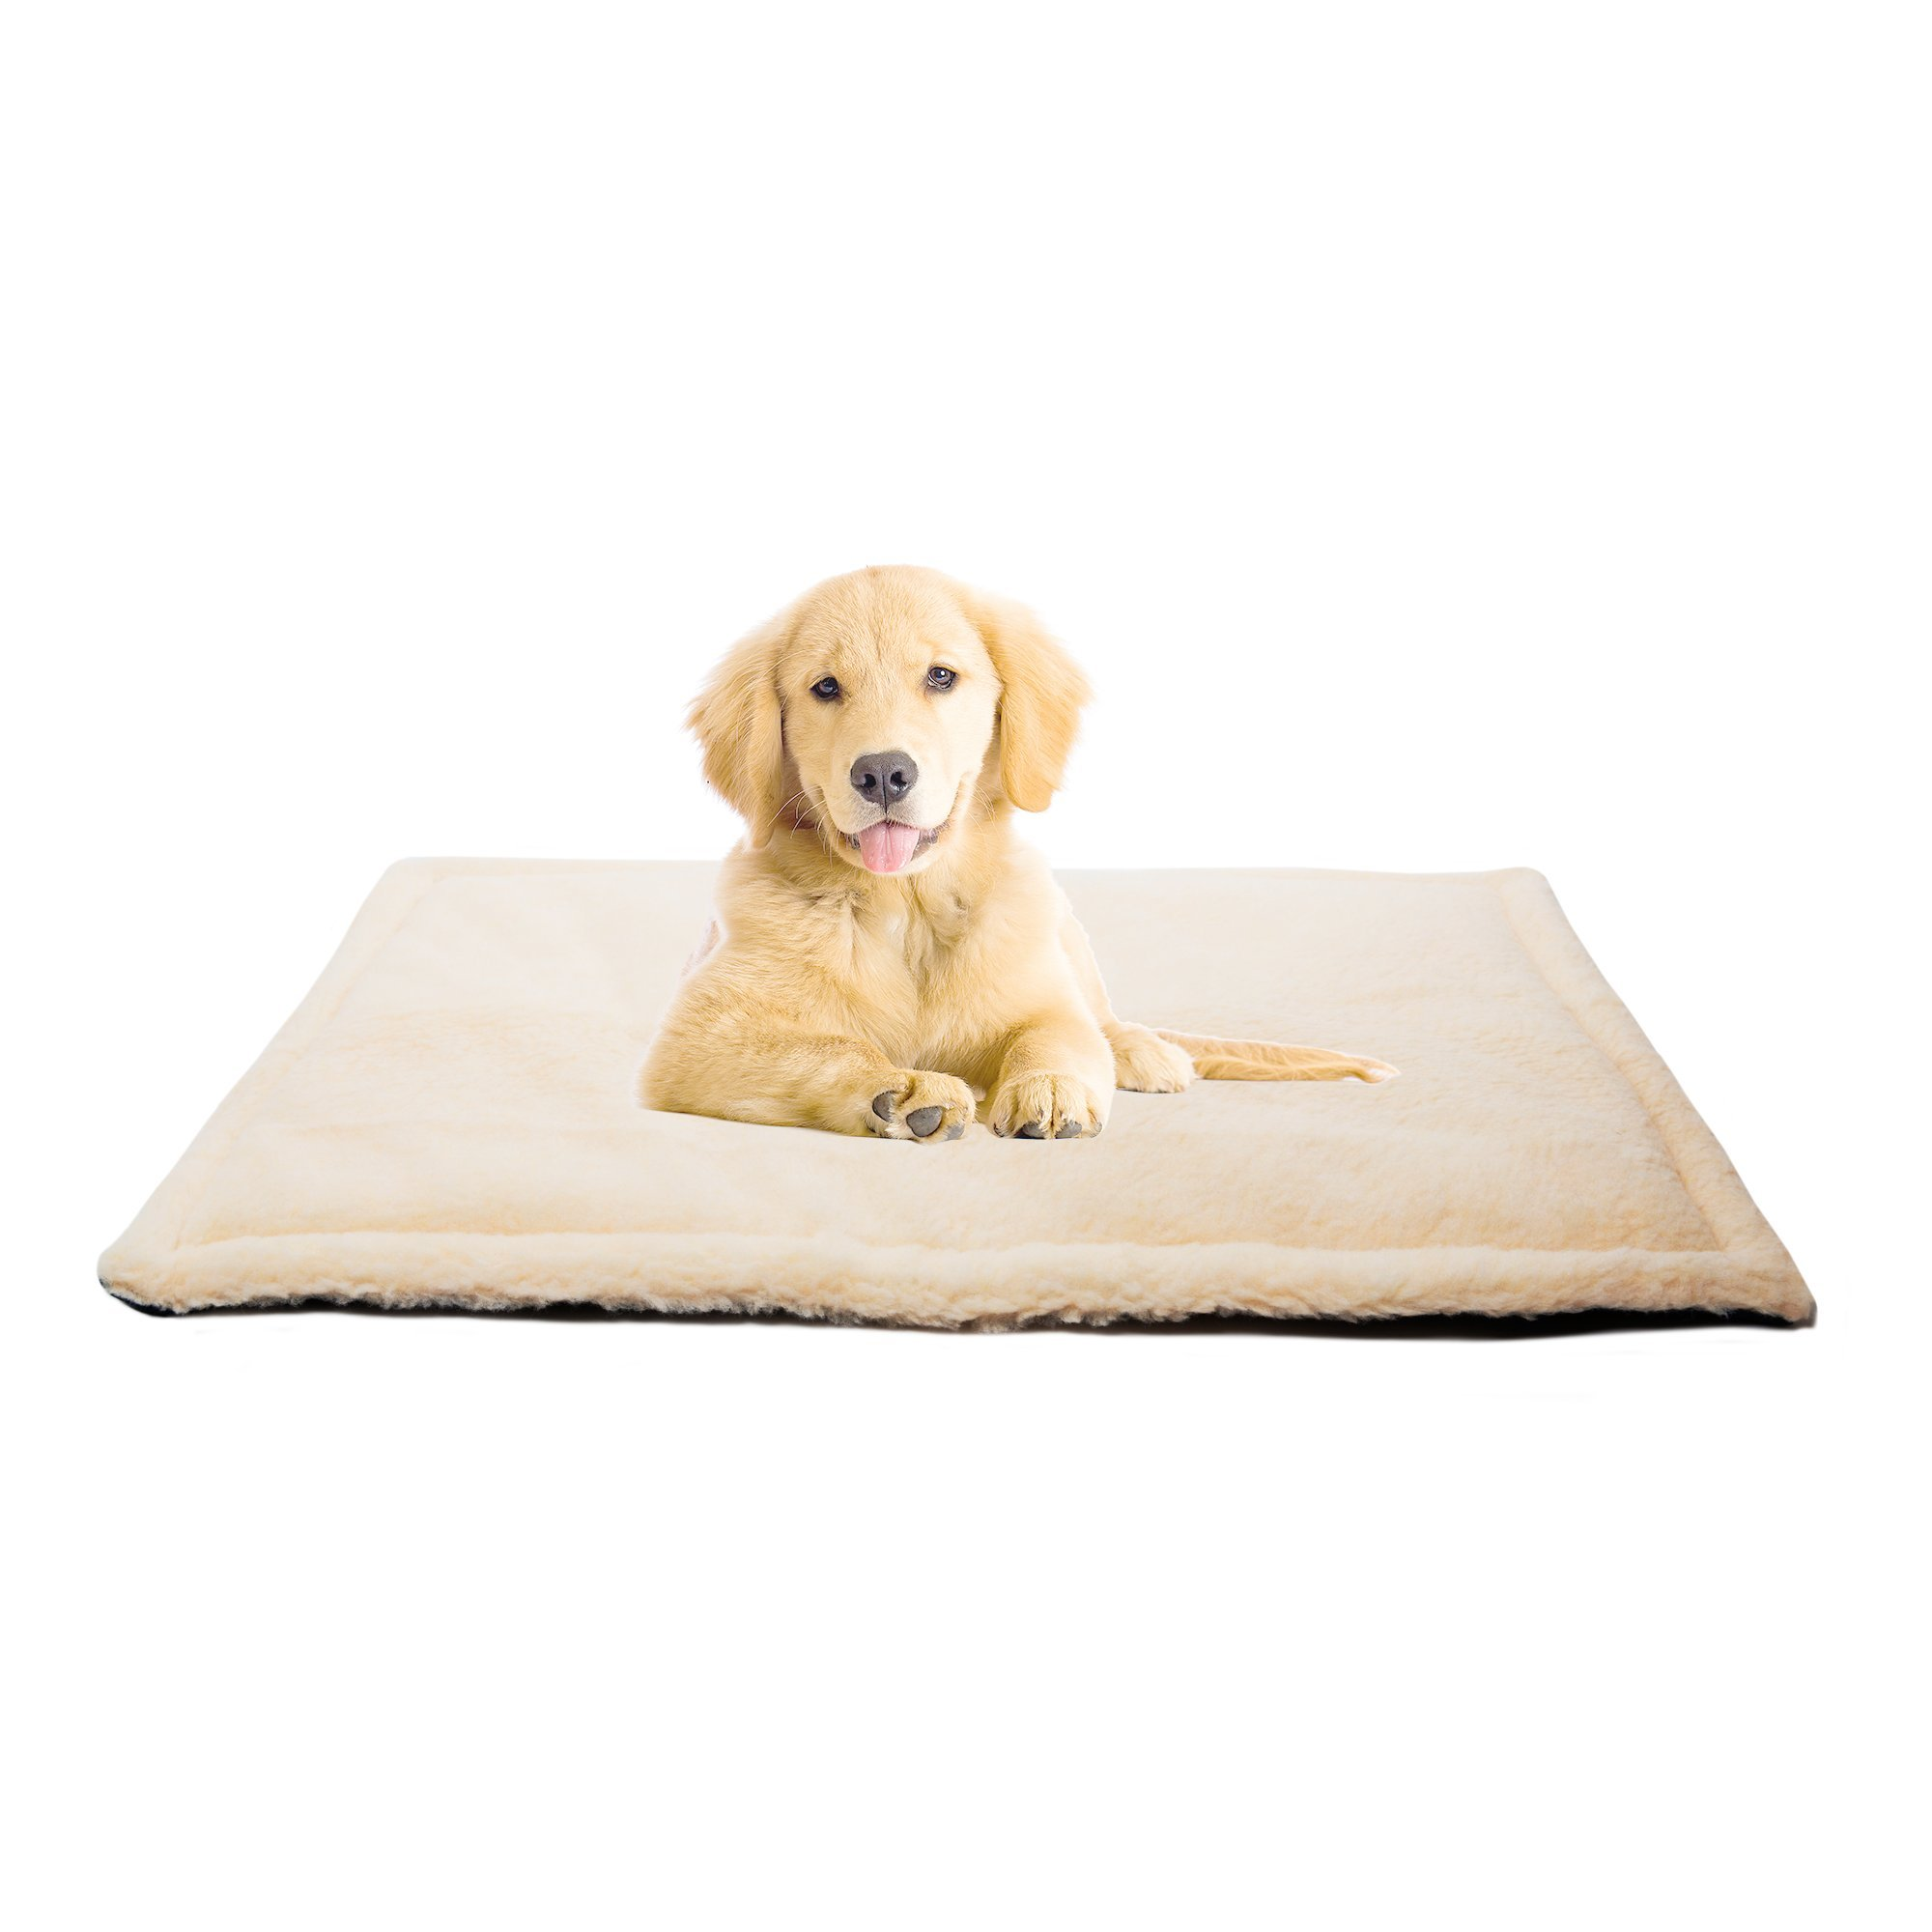 36x24 inch Dog Kennel Crate Mat Pad and Pet Bed for Medium Dogs and Cats, Machine Washable, Water-Resistent, Indoor or Outdoor